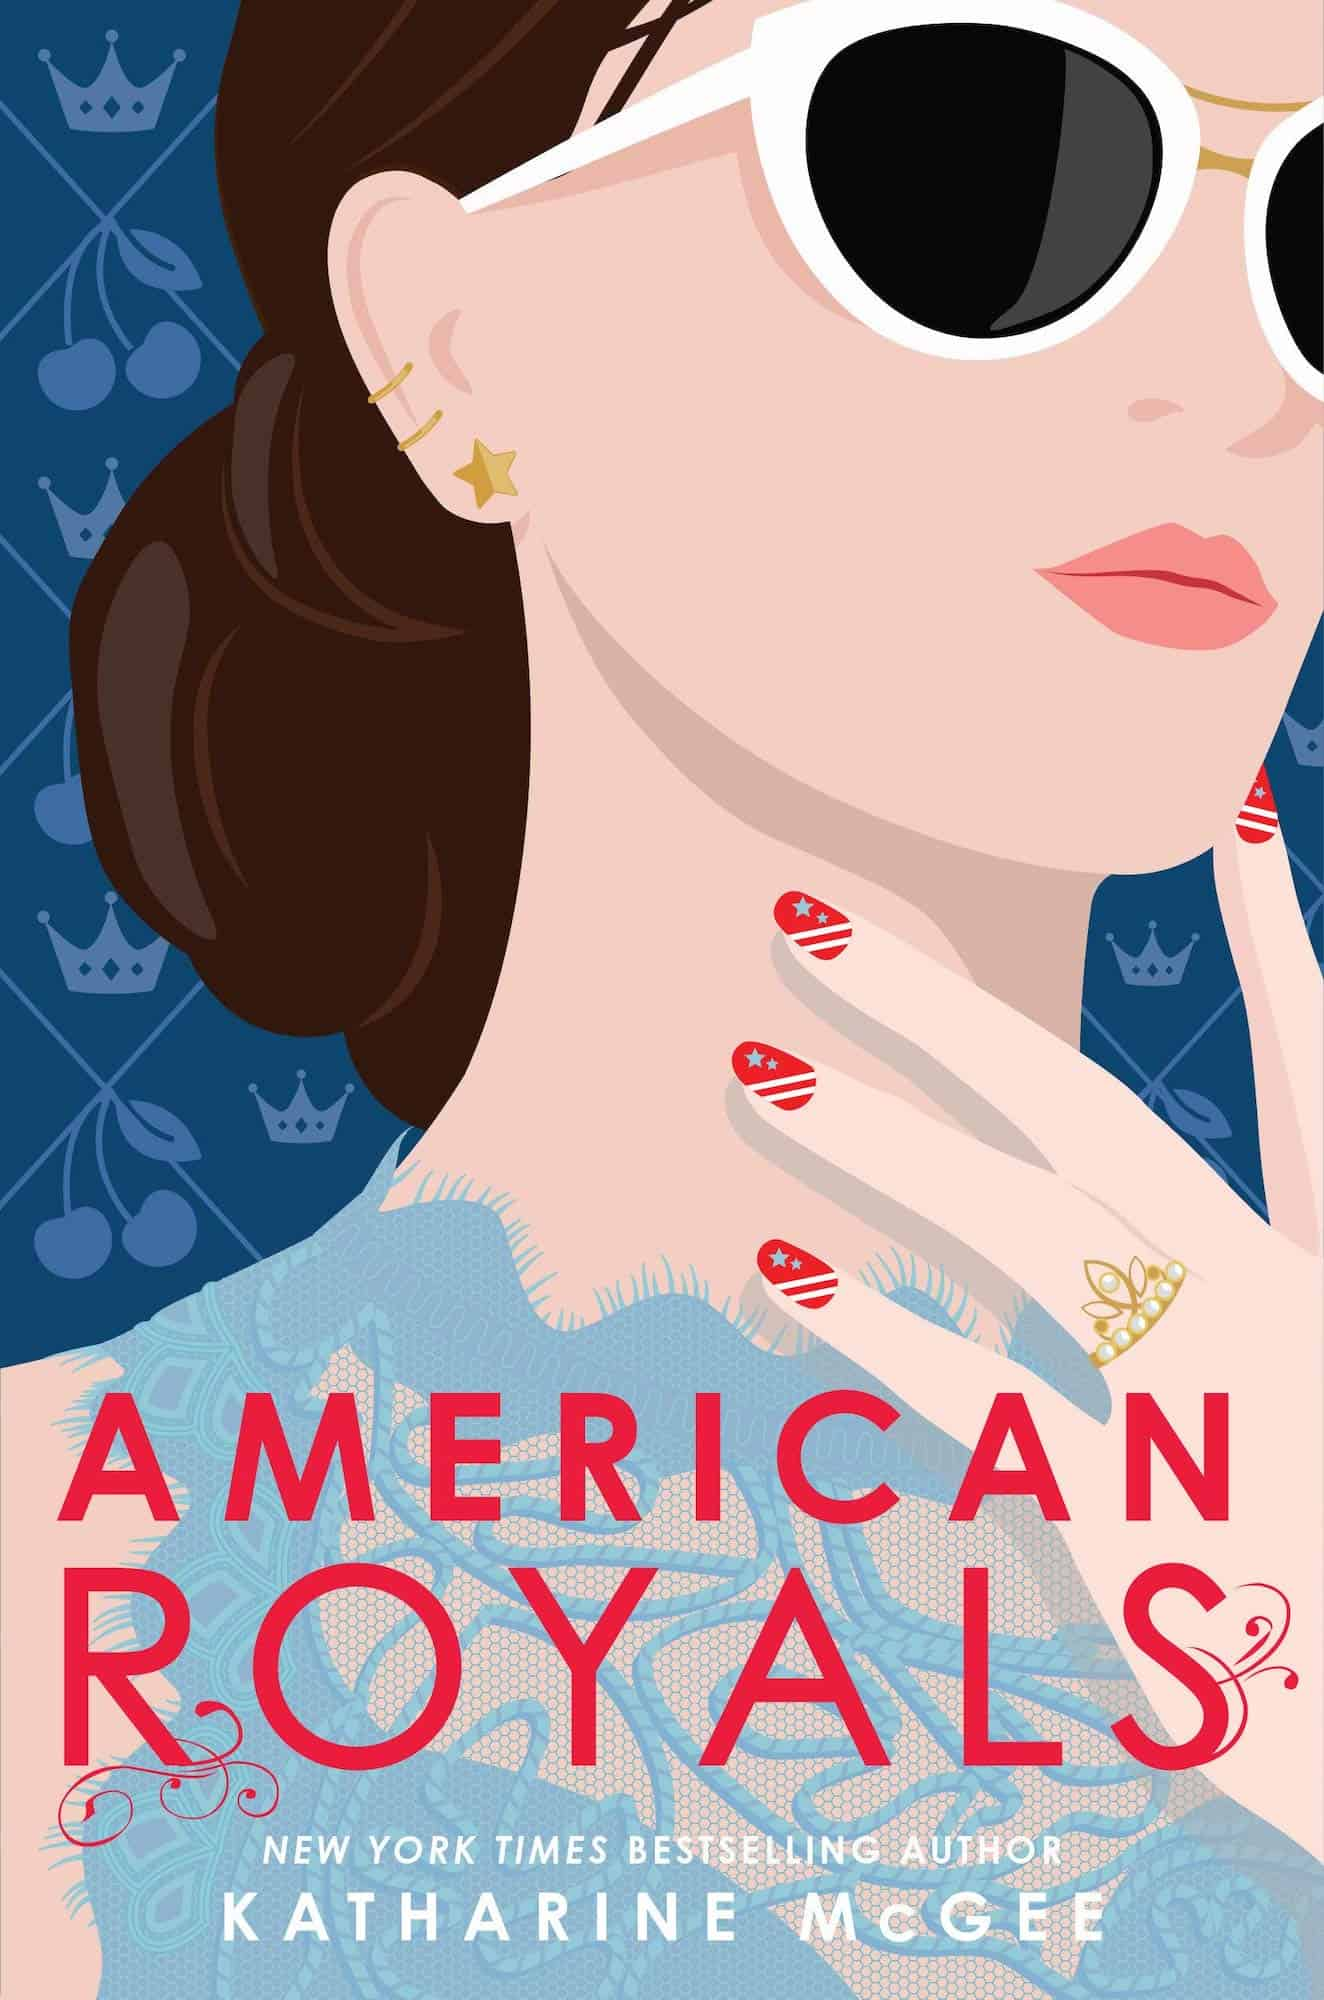 The cover of American Royals by Katharine McGee, showing a young woman in sunglasses and a blue lace top with red and white striped/starred nail polish.